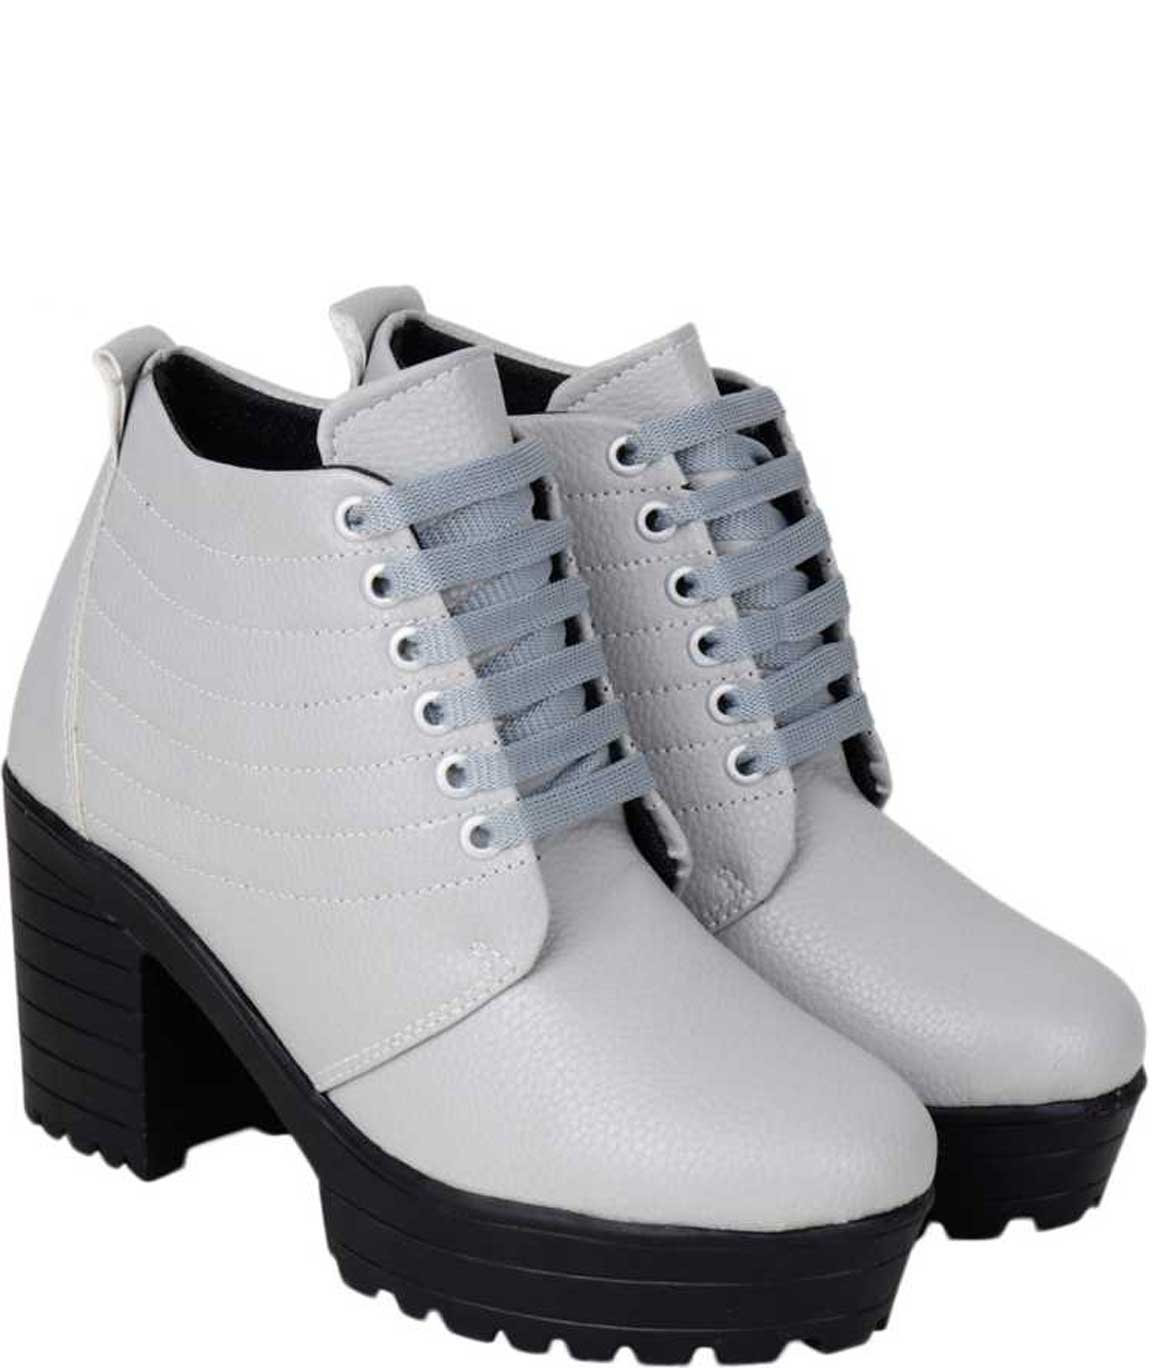 BOOT FOR WOMEN (GREY)